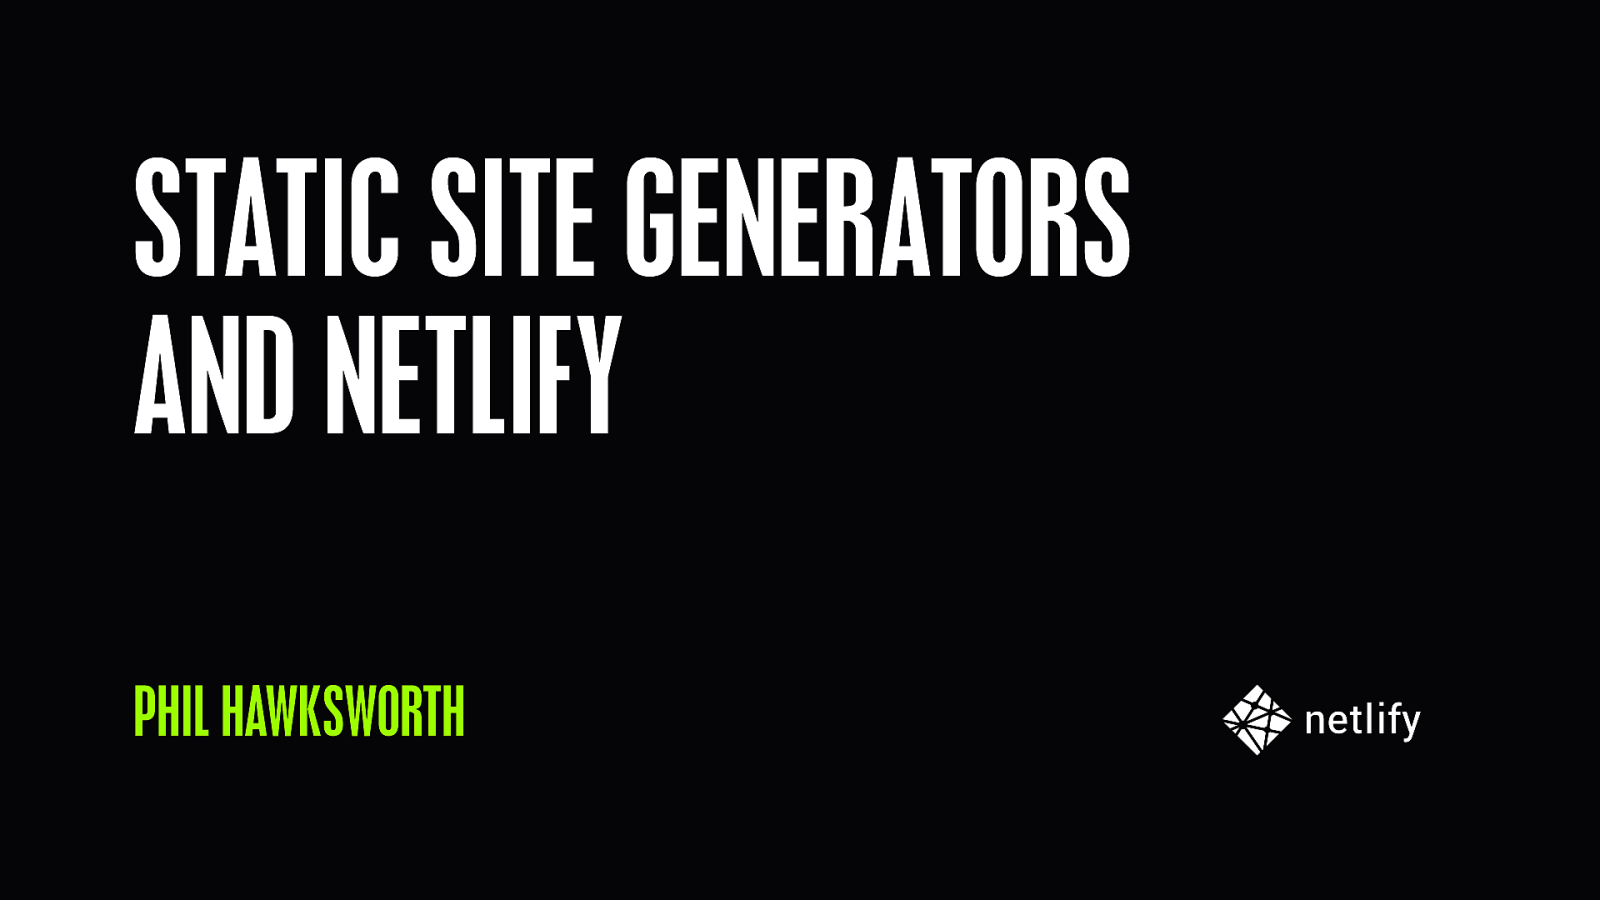 Workshop: Netlify & Static Site Generators